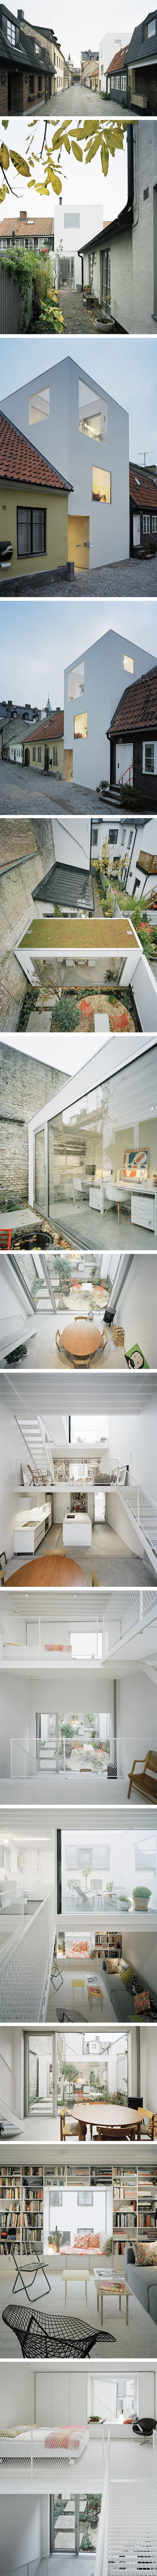 Tiny Townhouse in Landskrona (Sweden):  125sq mt that workd as an art gallery/home/office